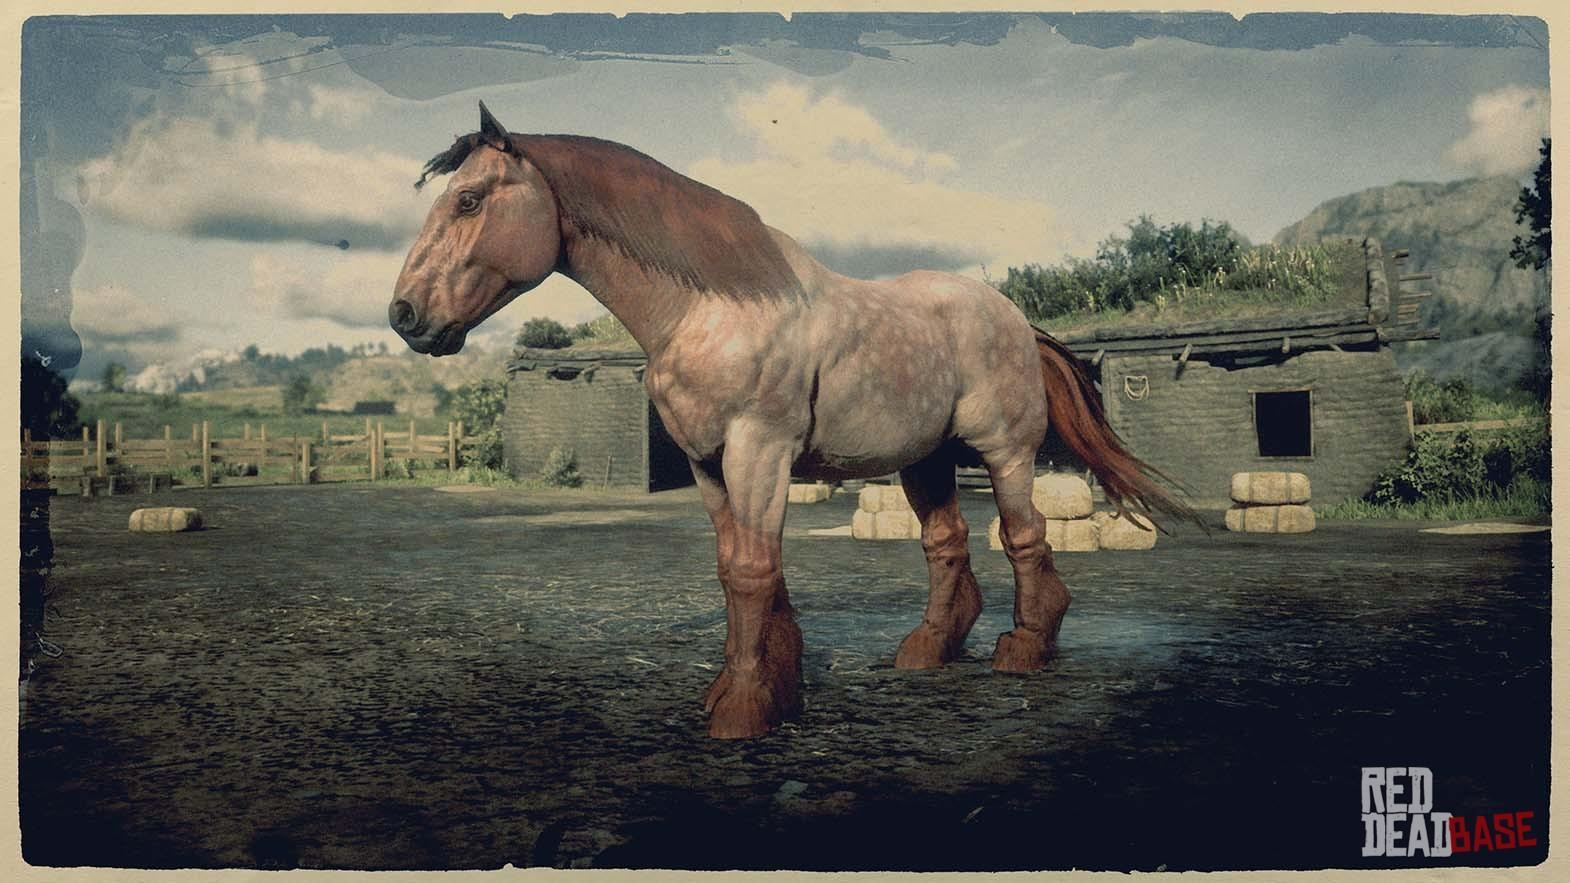 Ardennes Red Dead Redemption 2 Horse Breeds Guide Red Dead Redemption 2 Animals Species Wildlife Database Red Dead Redemption 2